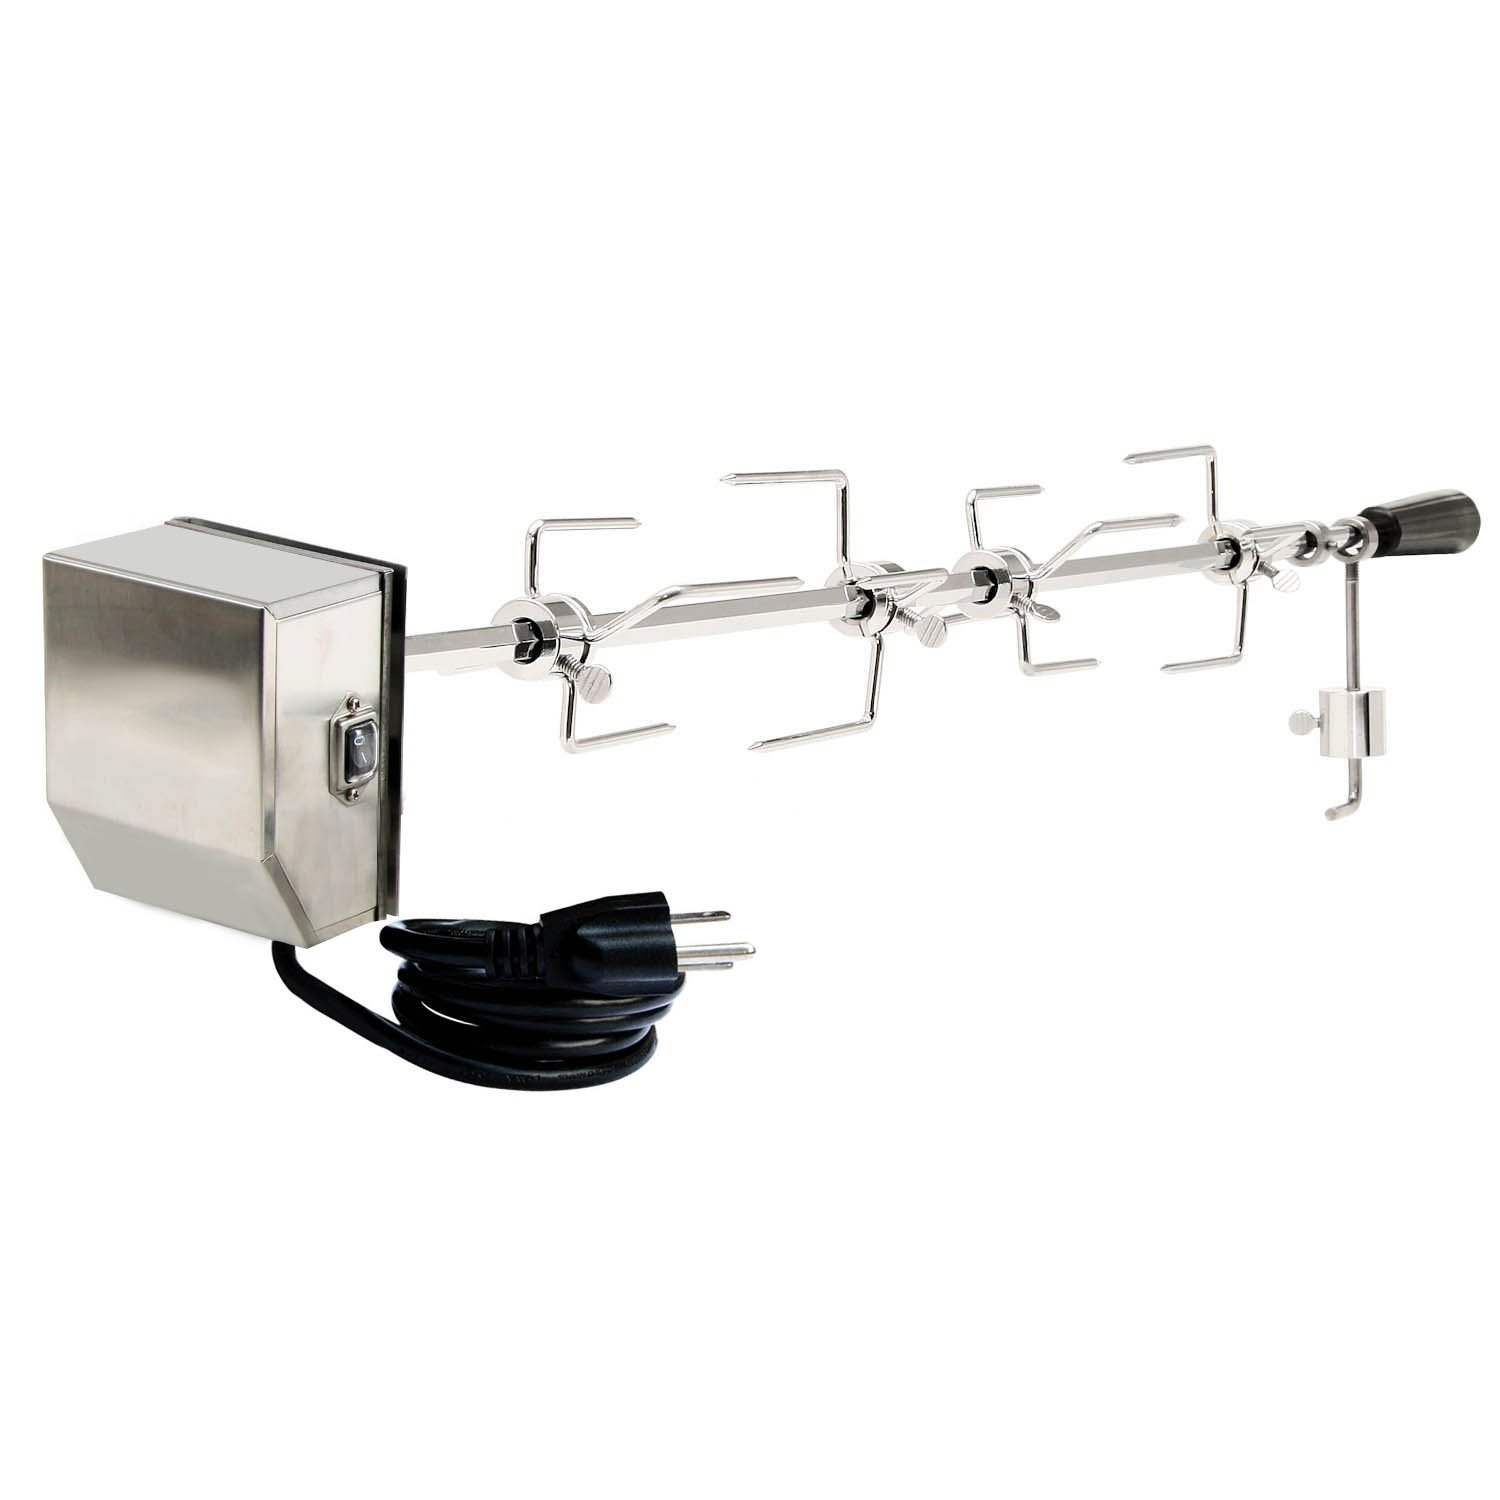 Onlyfire Universal Grill Replacement Rotisserie Kit - 45'' & 53'' X 1/2'' Hexagon Spit Rod, Stainless Steel Electric Motor by only fire